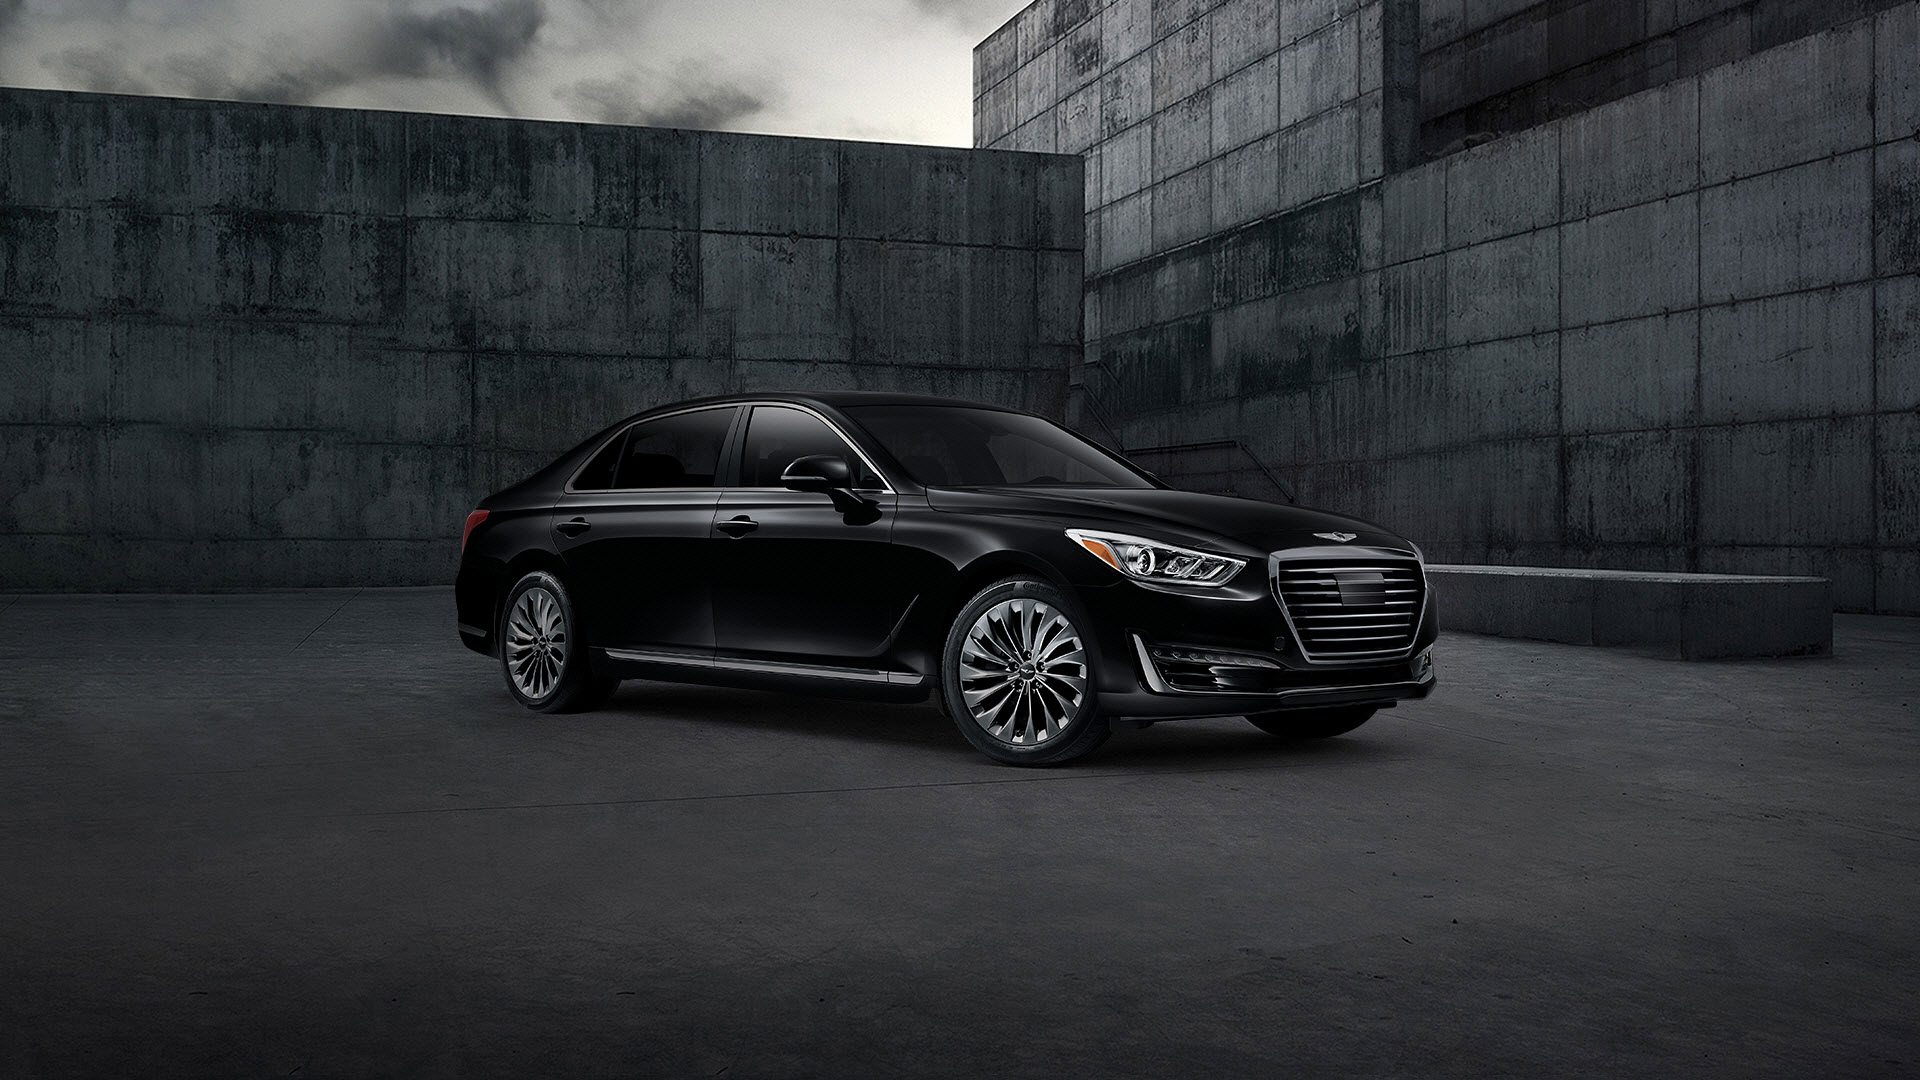 genesis g90 the new luxury midsize sedan genesis usa. Black Bedroom Furniture Sets. Home Design Ideas